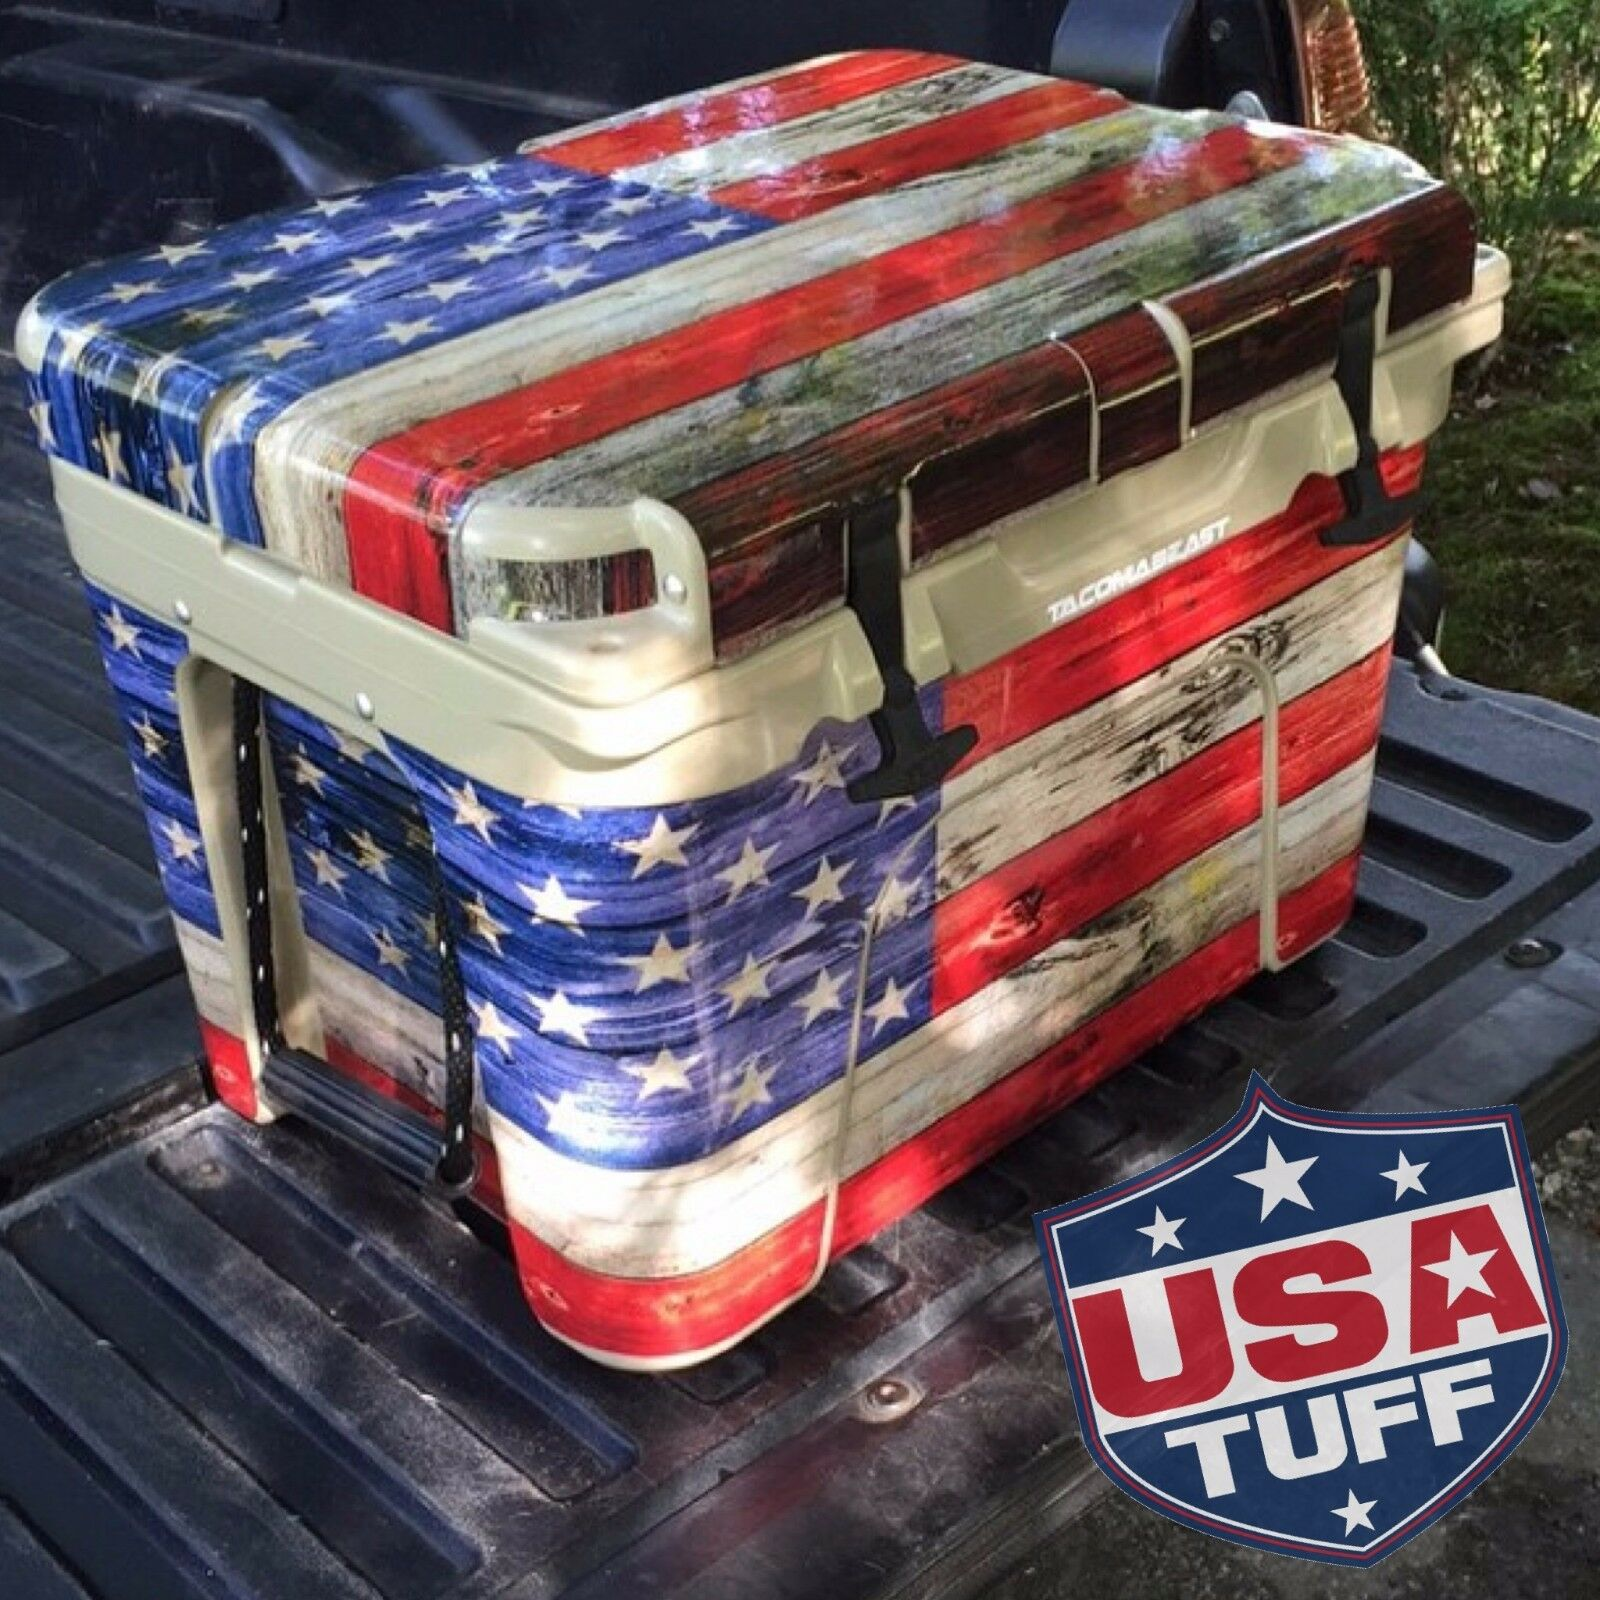 USATuff Wrap Decal Full Kit YETI fits Custom YETI Kit Tundra 65qt Cooler Warrior USA 77422b